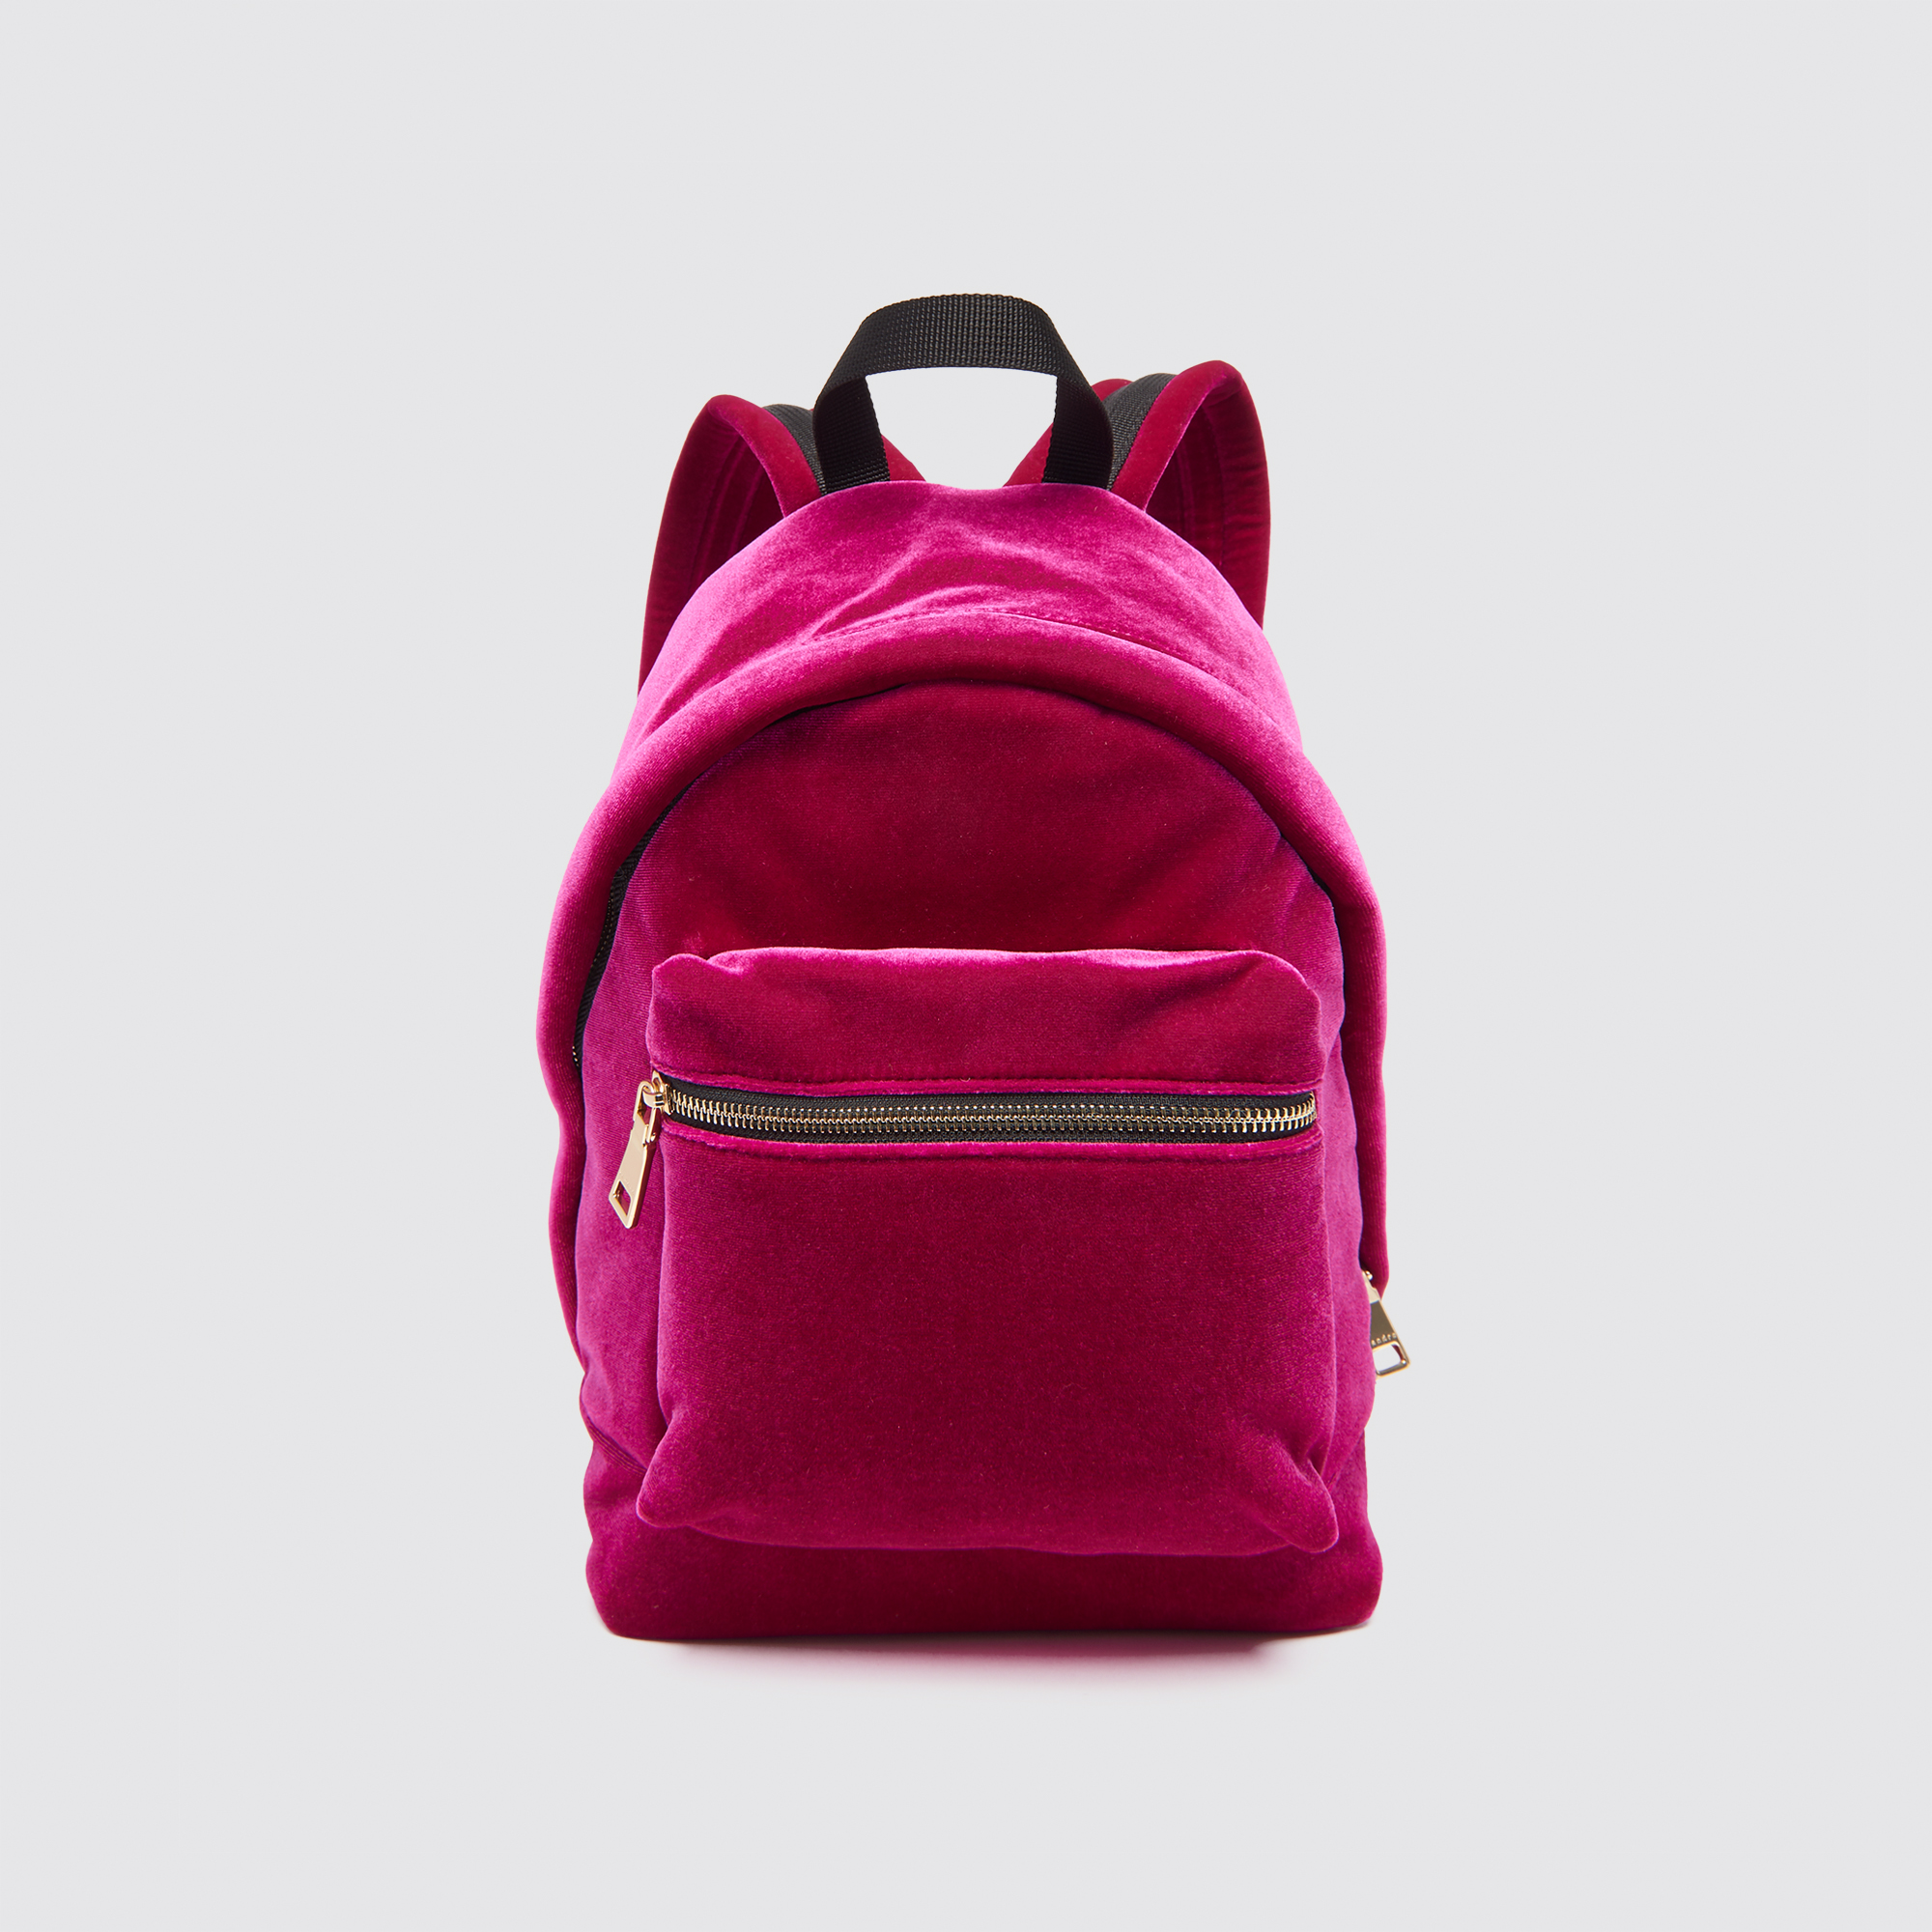 ad7c07a4dd Velvet backpack